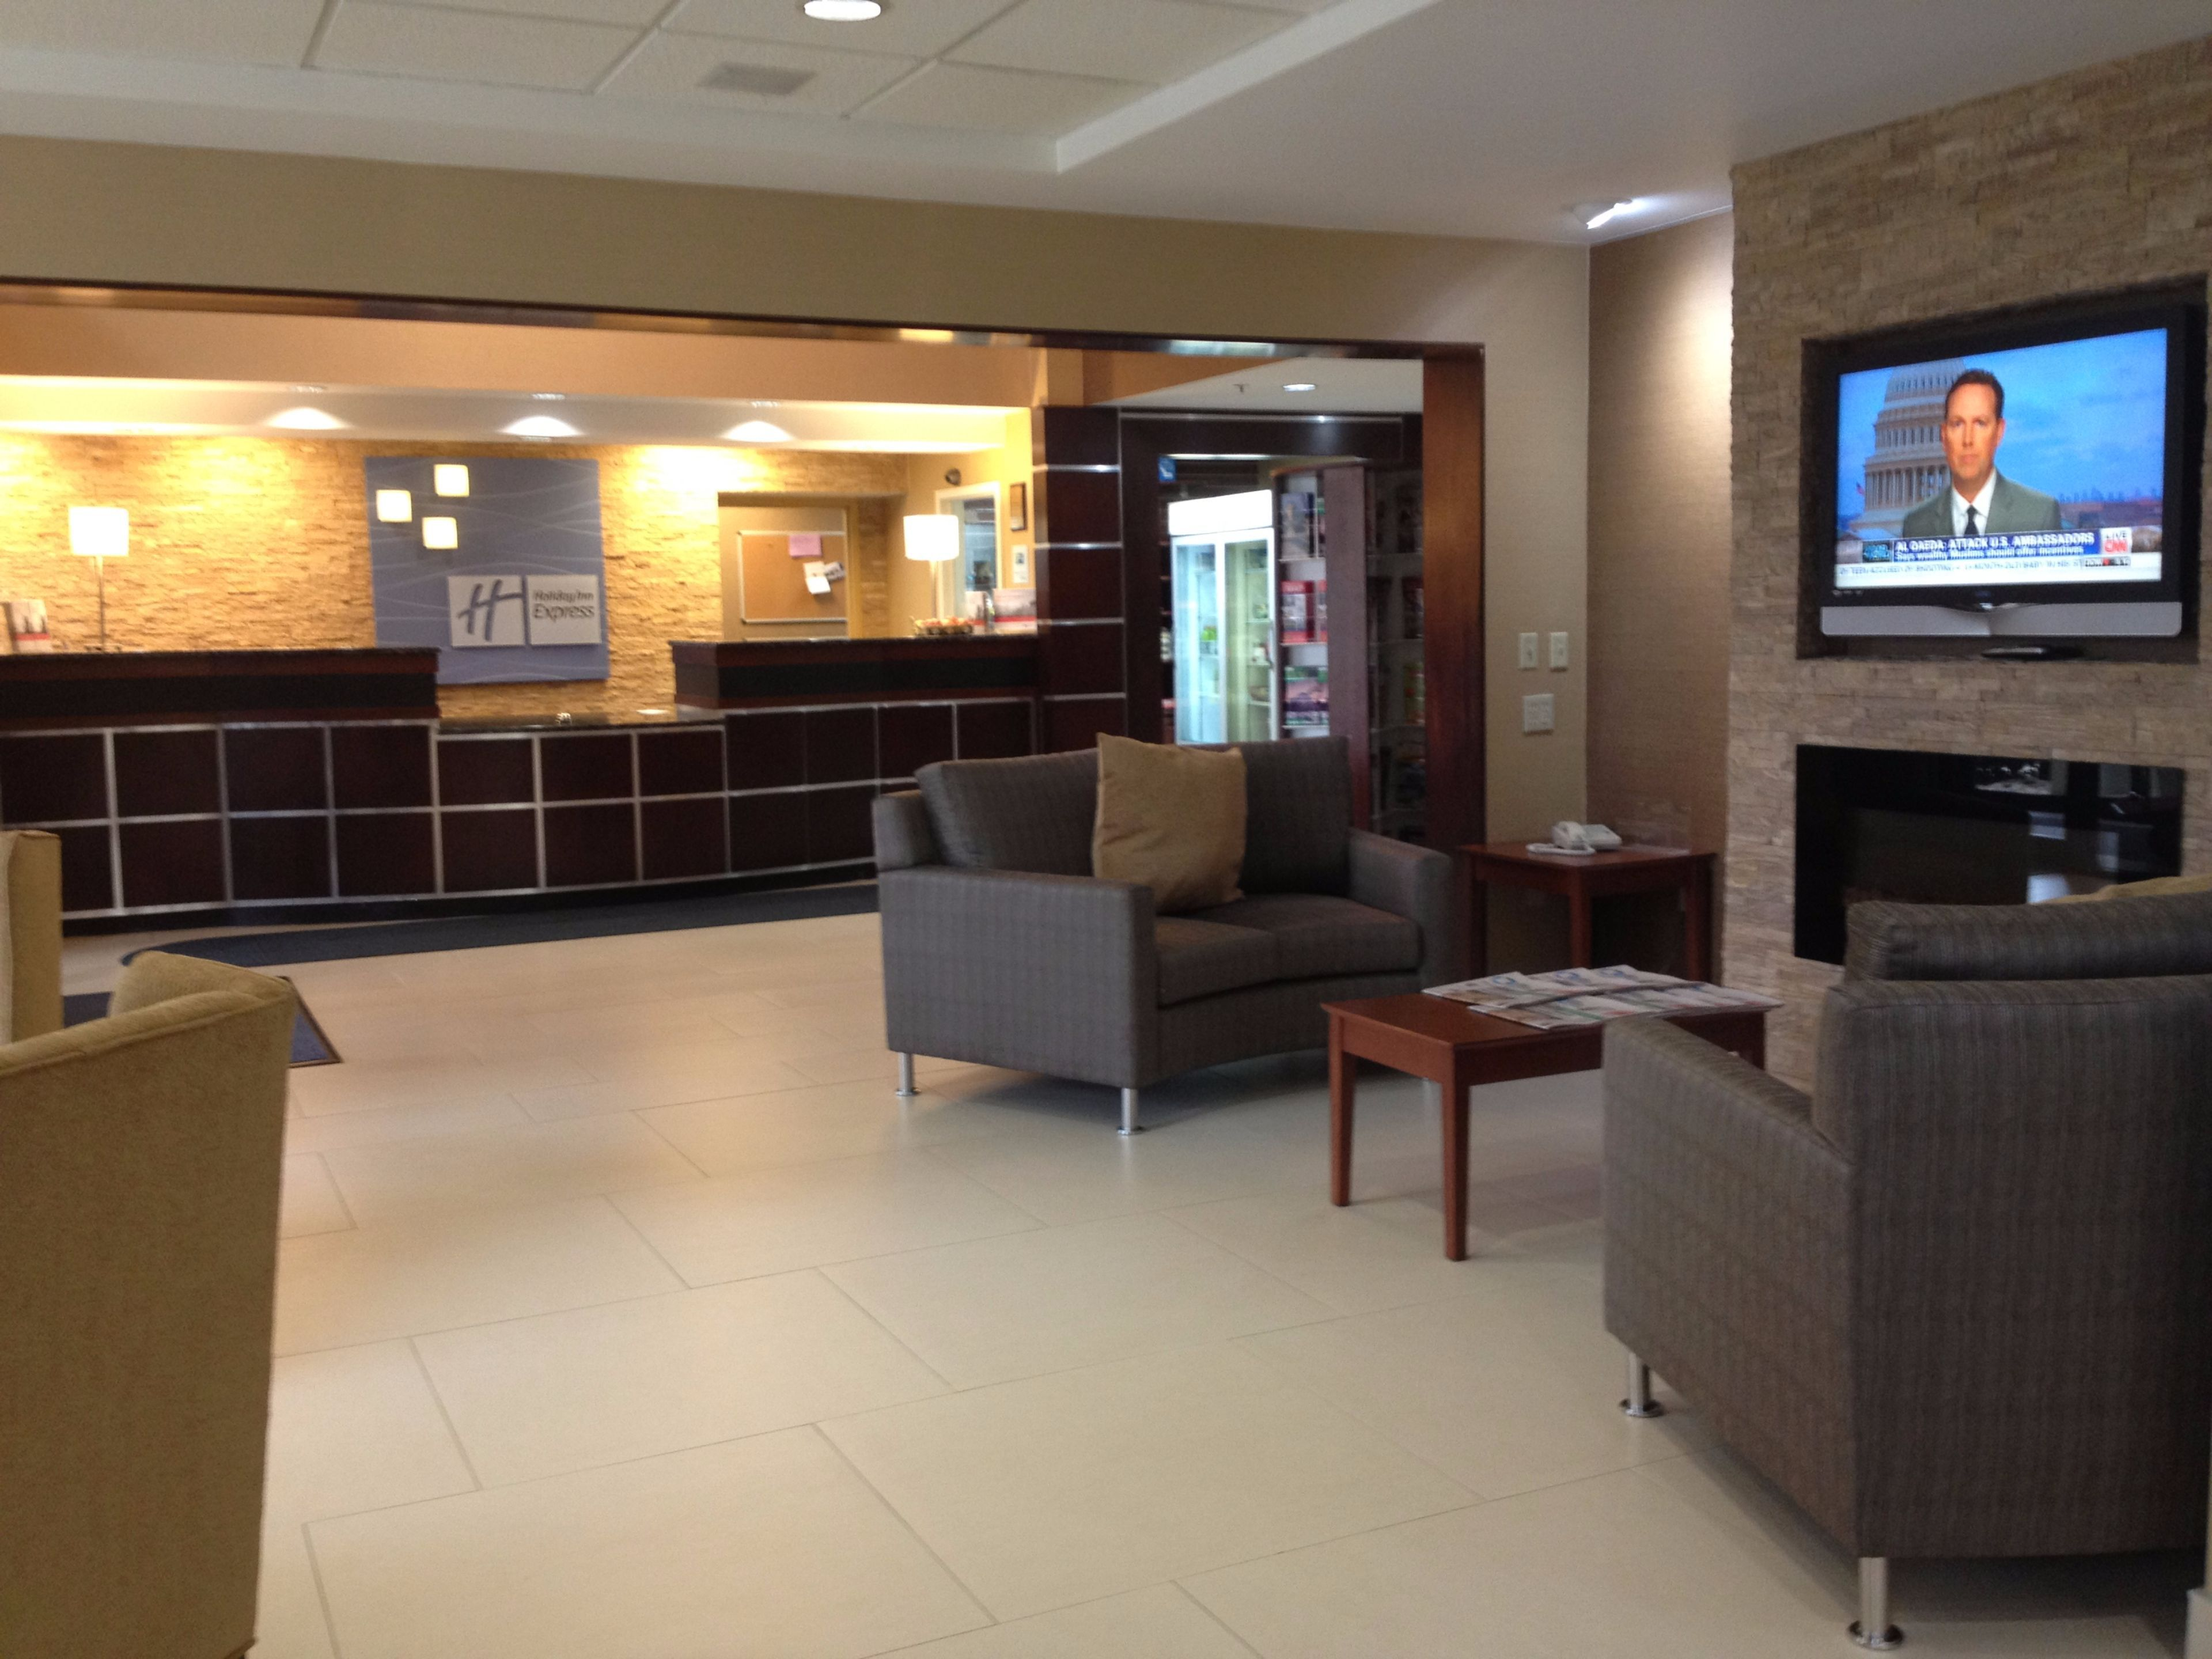 Holiday Inn Express & Suites West Chester image 7